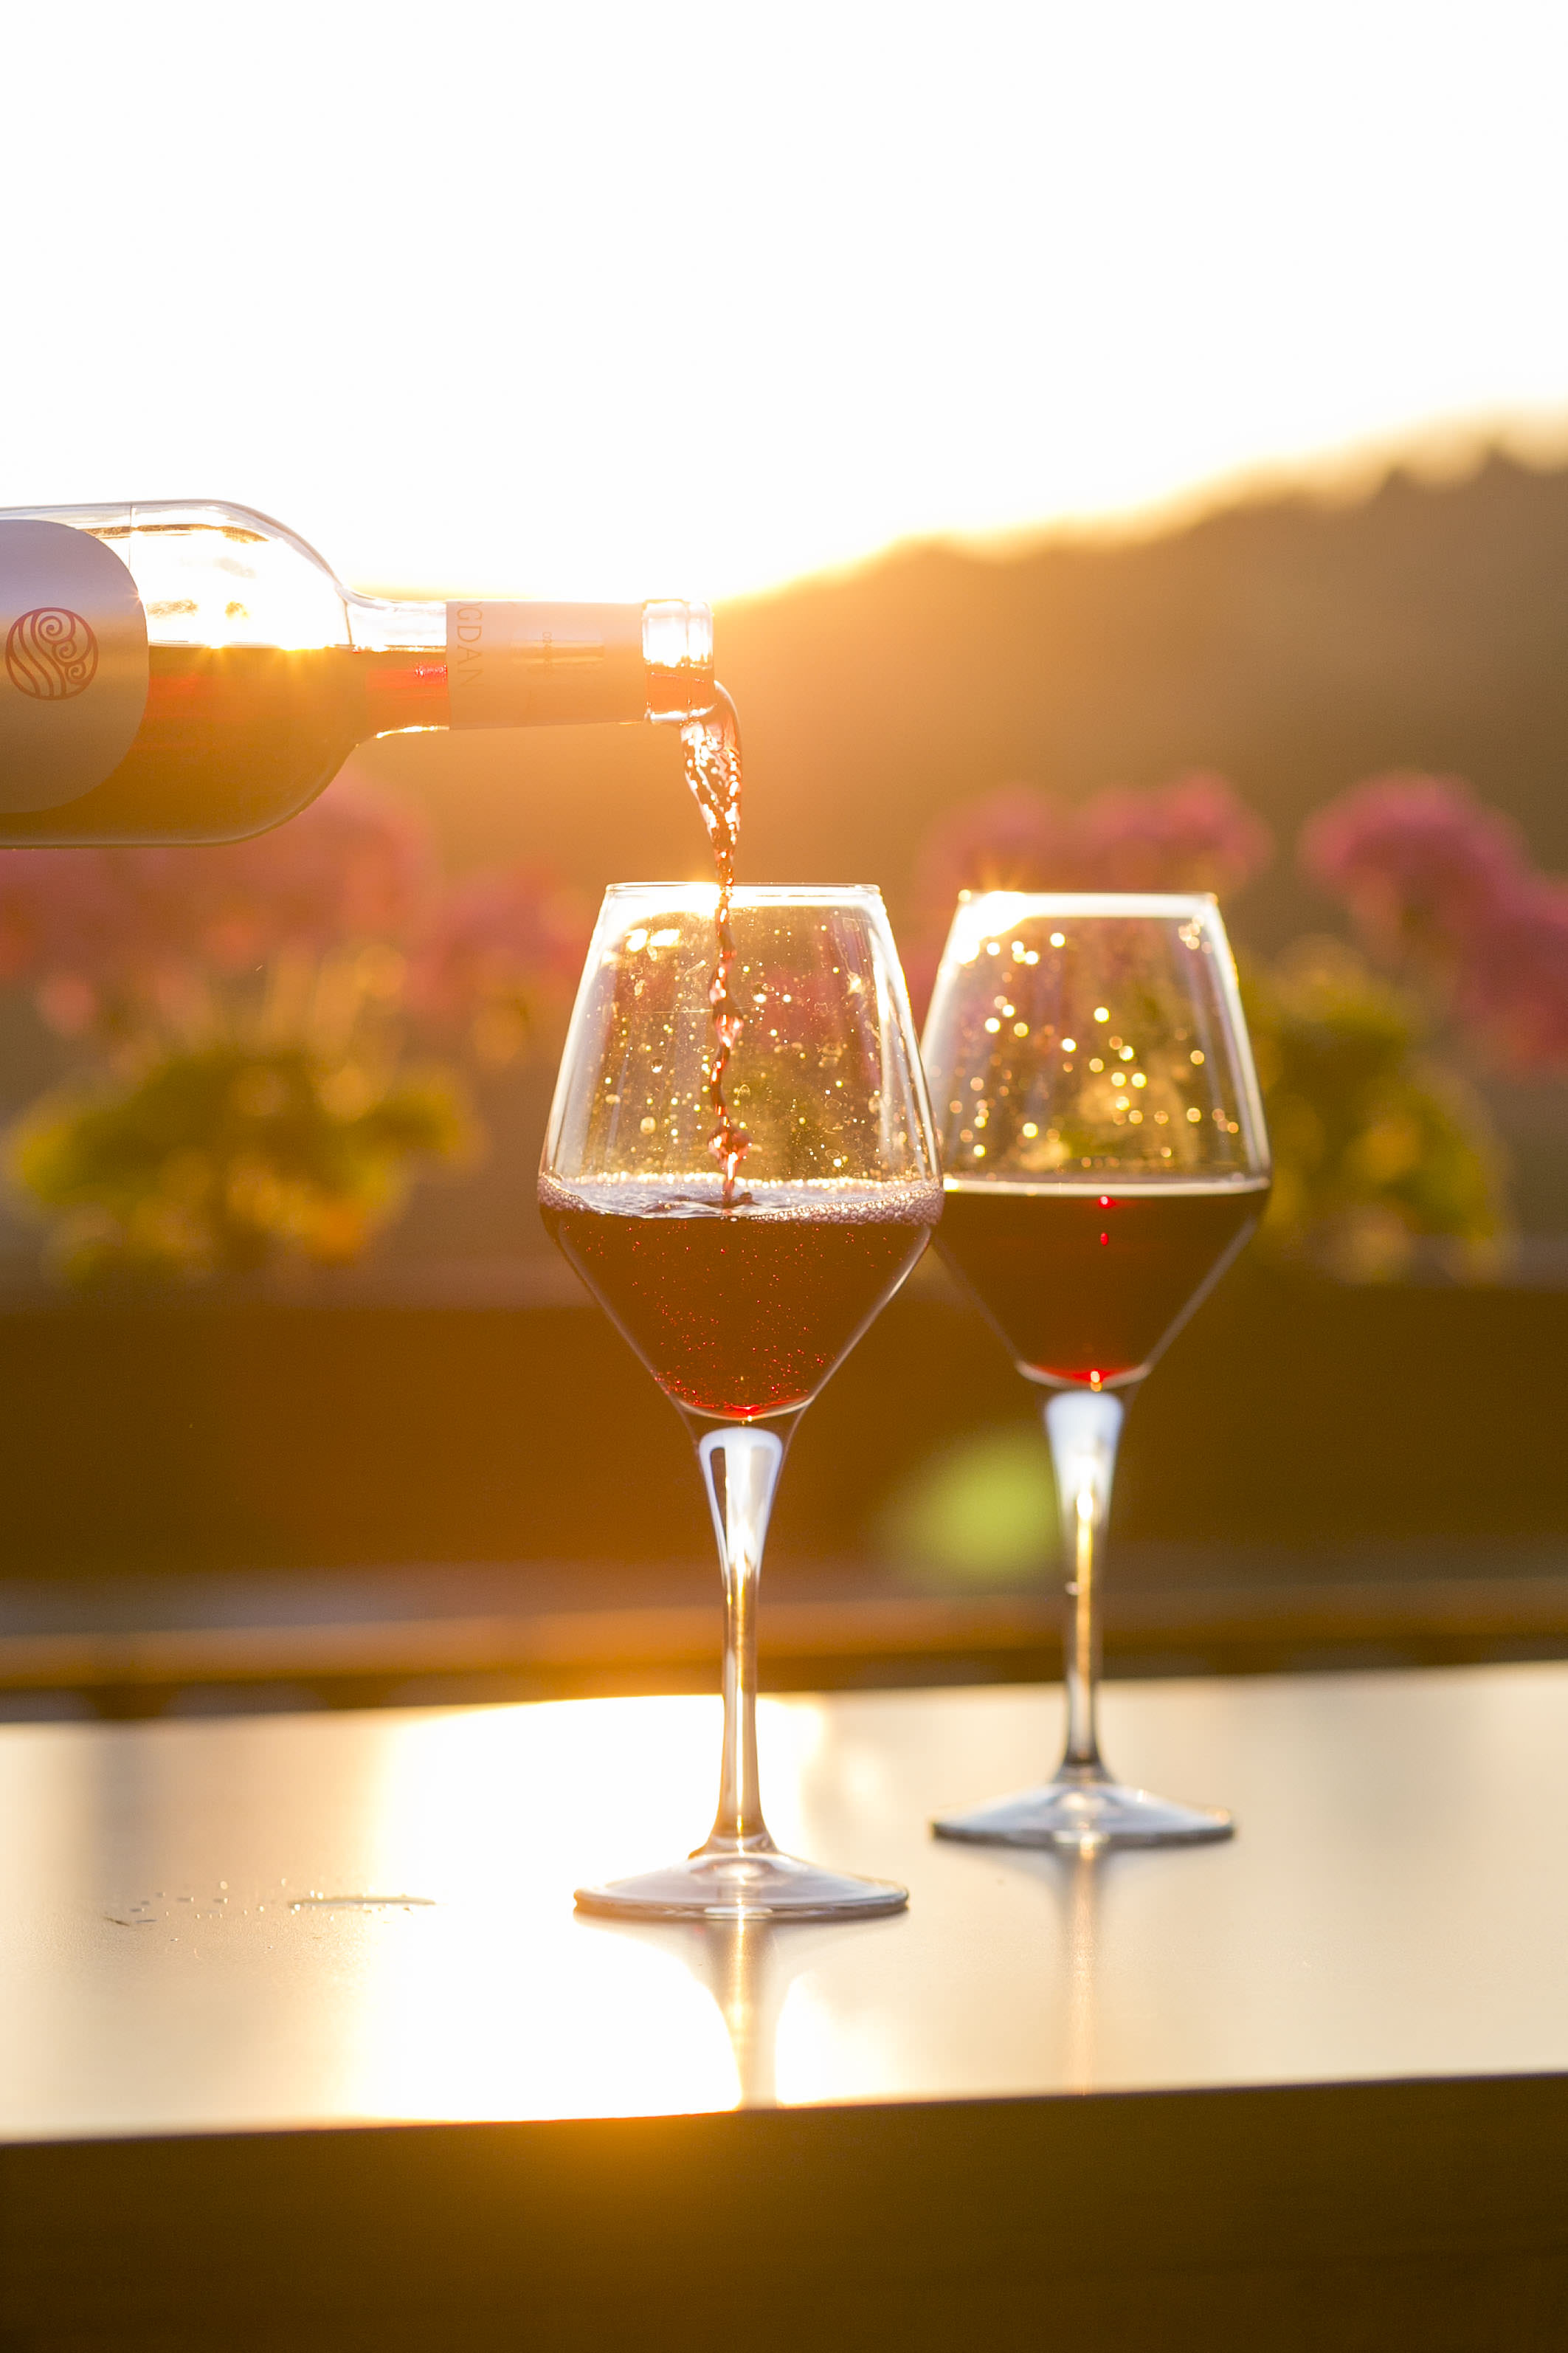 Sunset with Two Wine Glasses